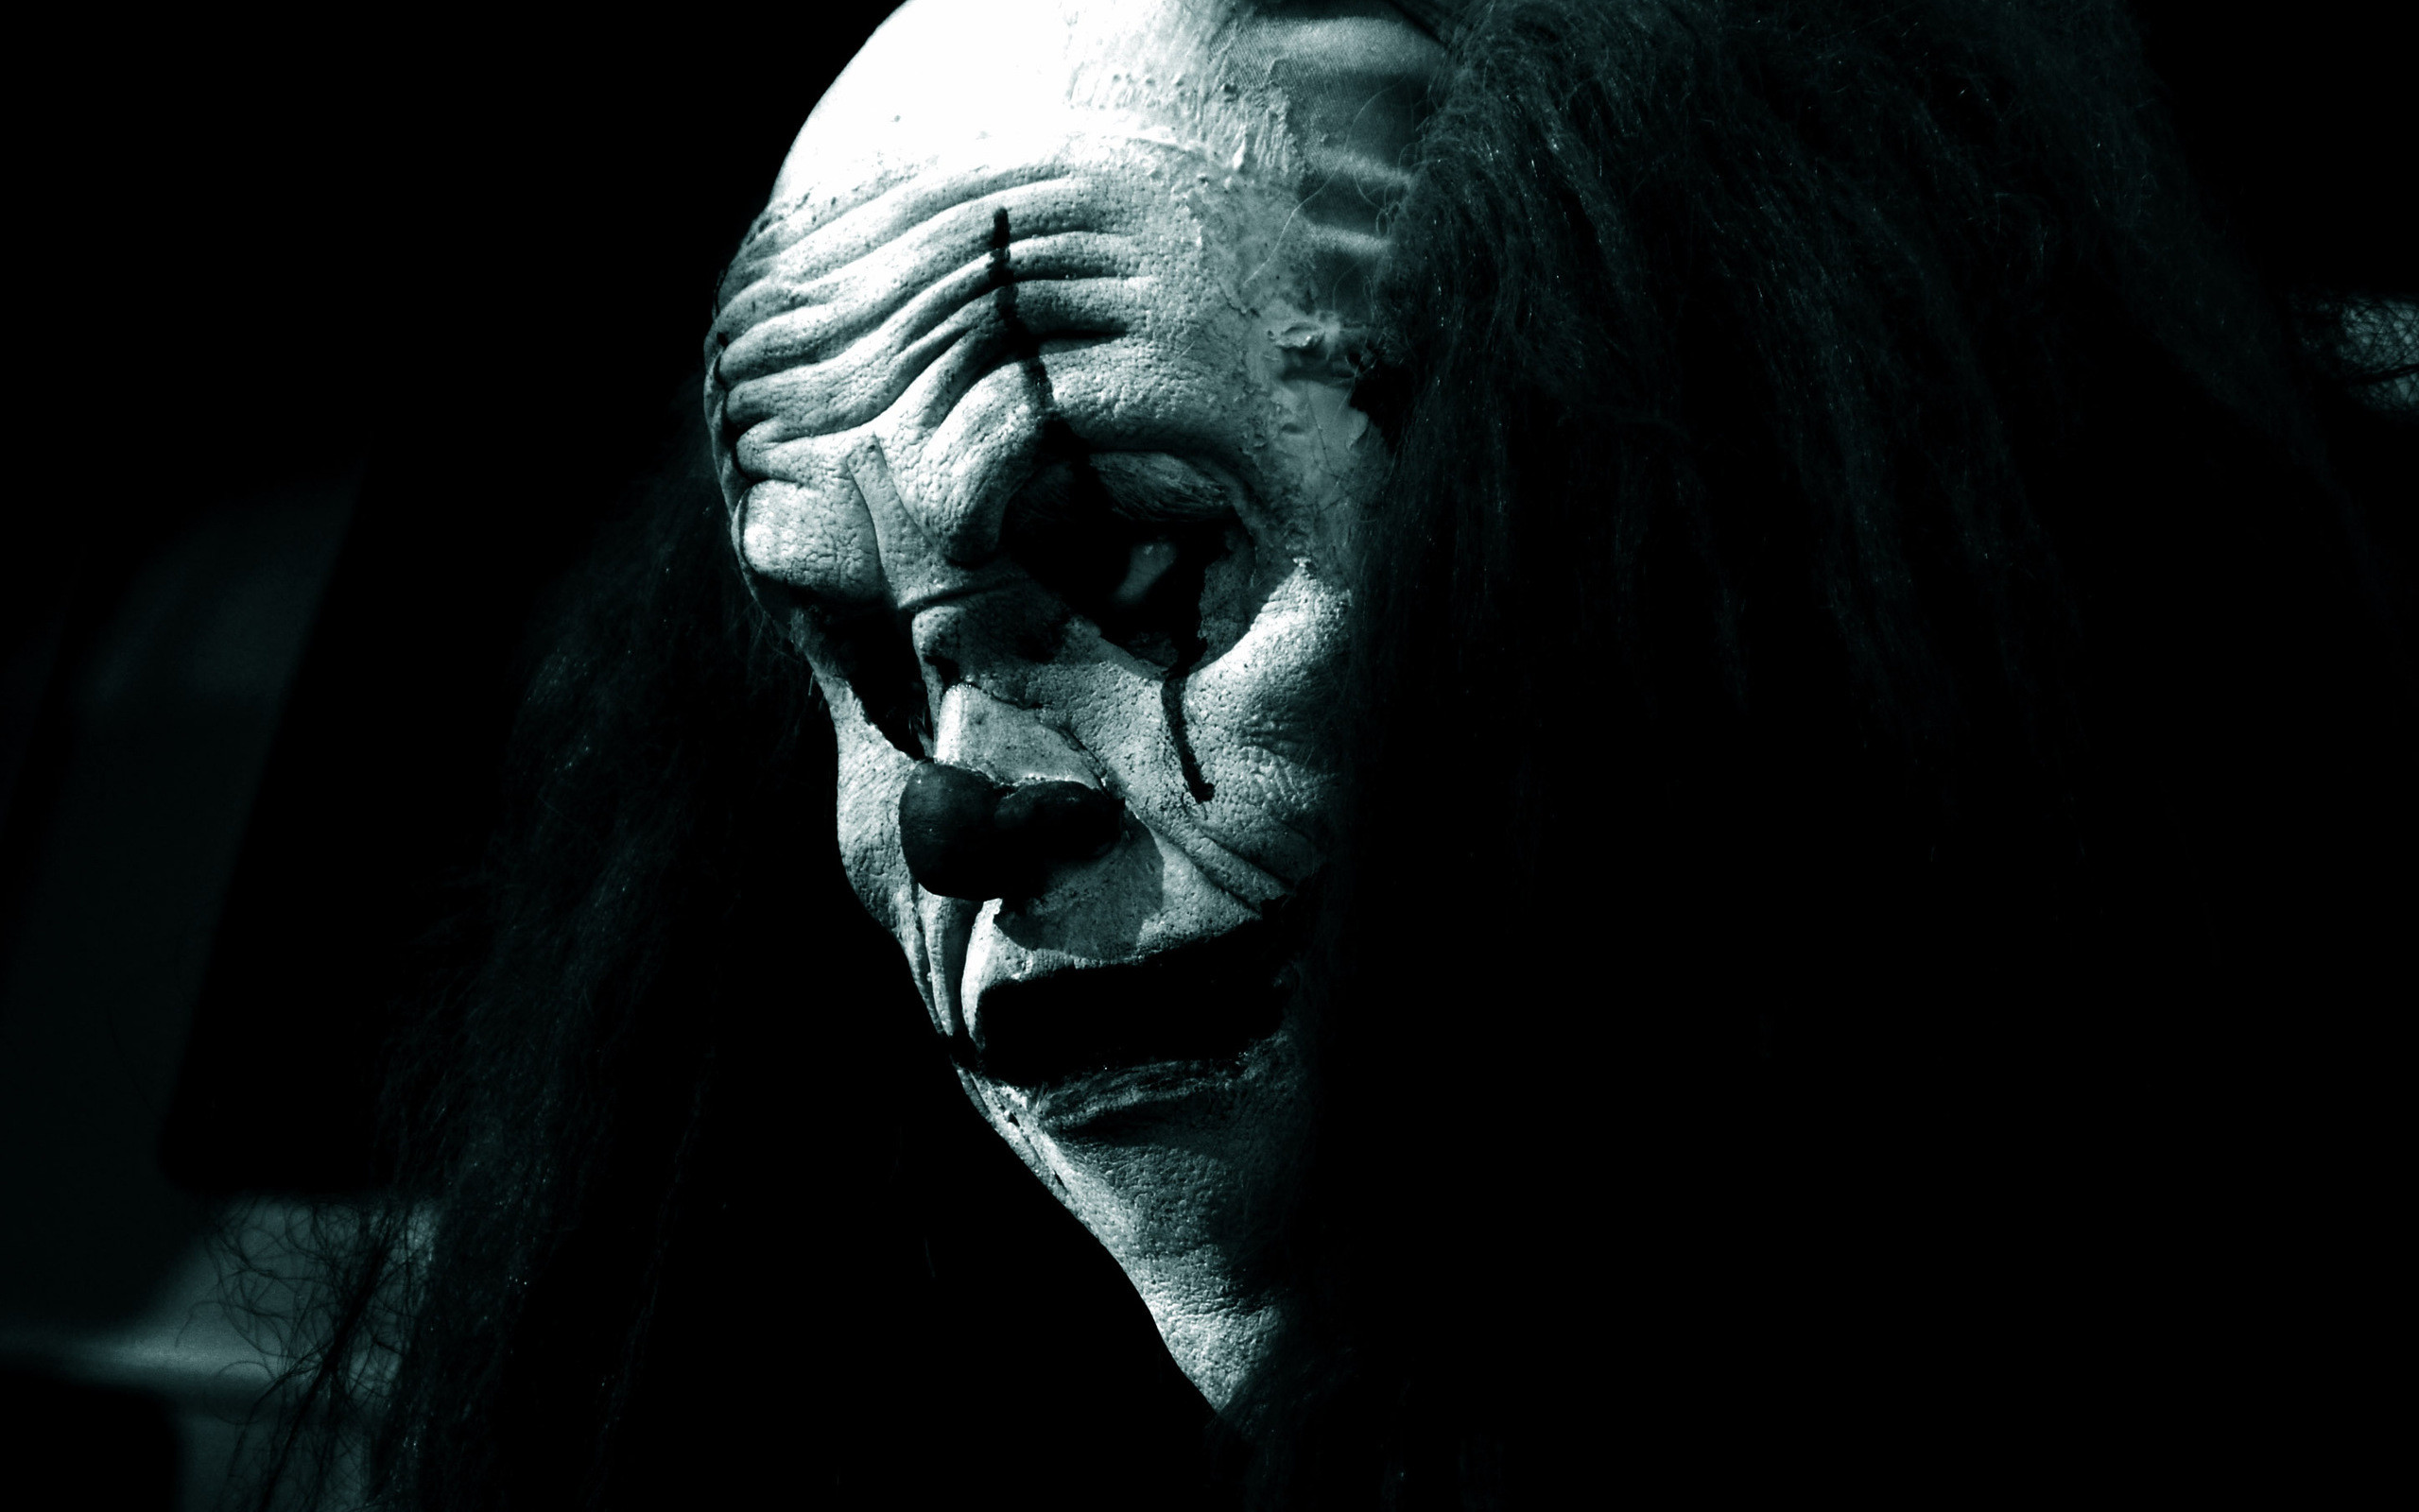 Scary clown wallpaper gothic. Wallpapers 3d for desktop, 3d pictures